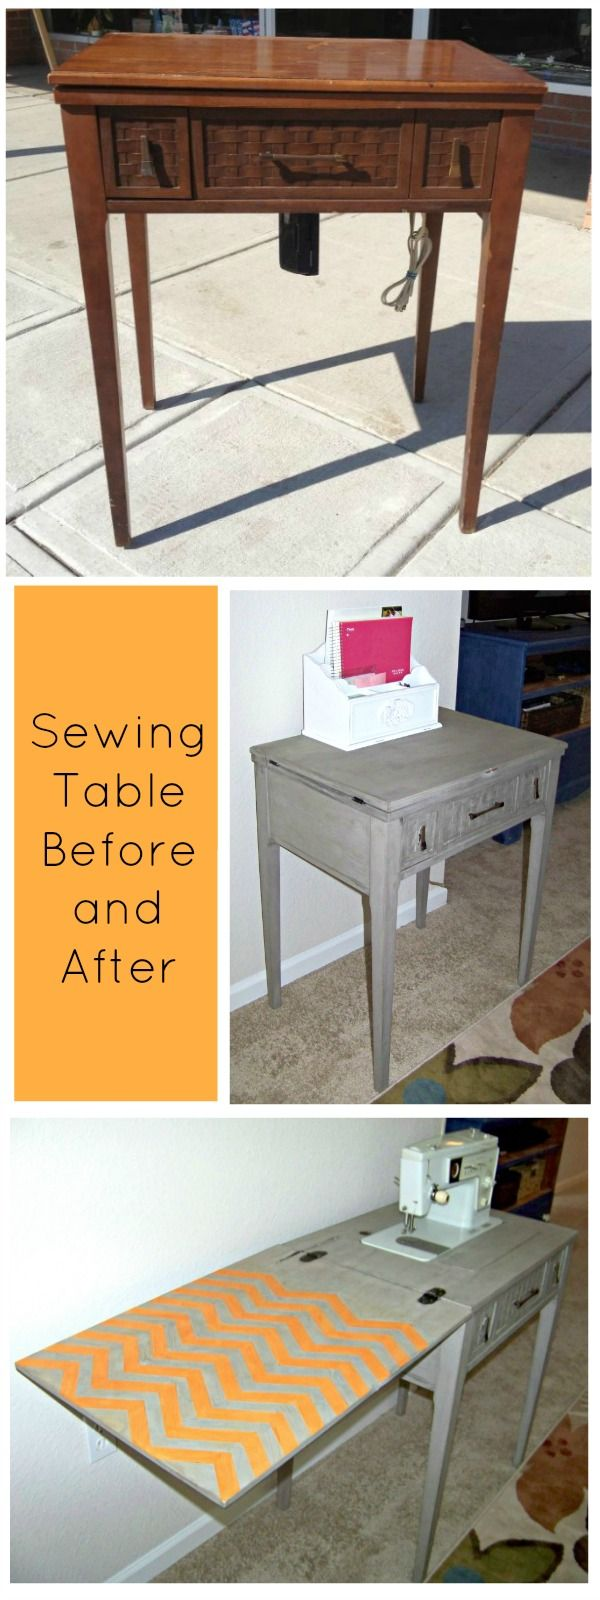 17 Best images about Sewing - Table on Pinterest ...